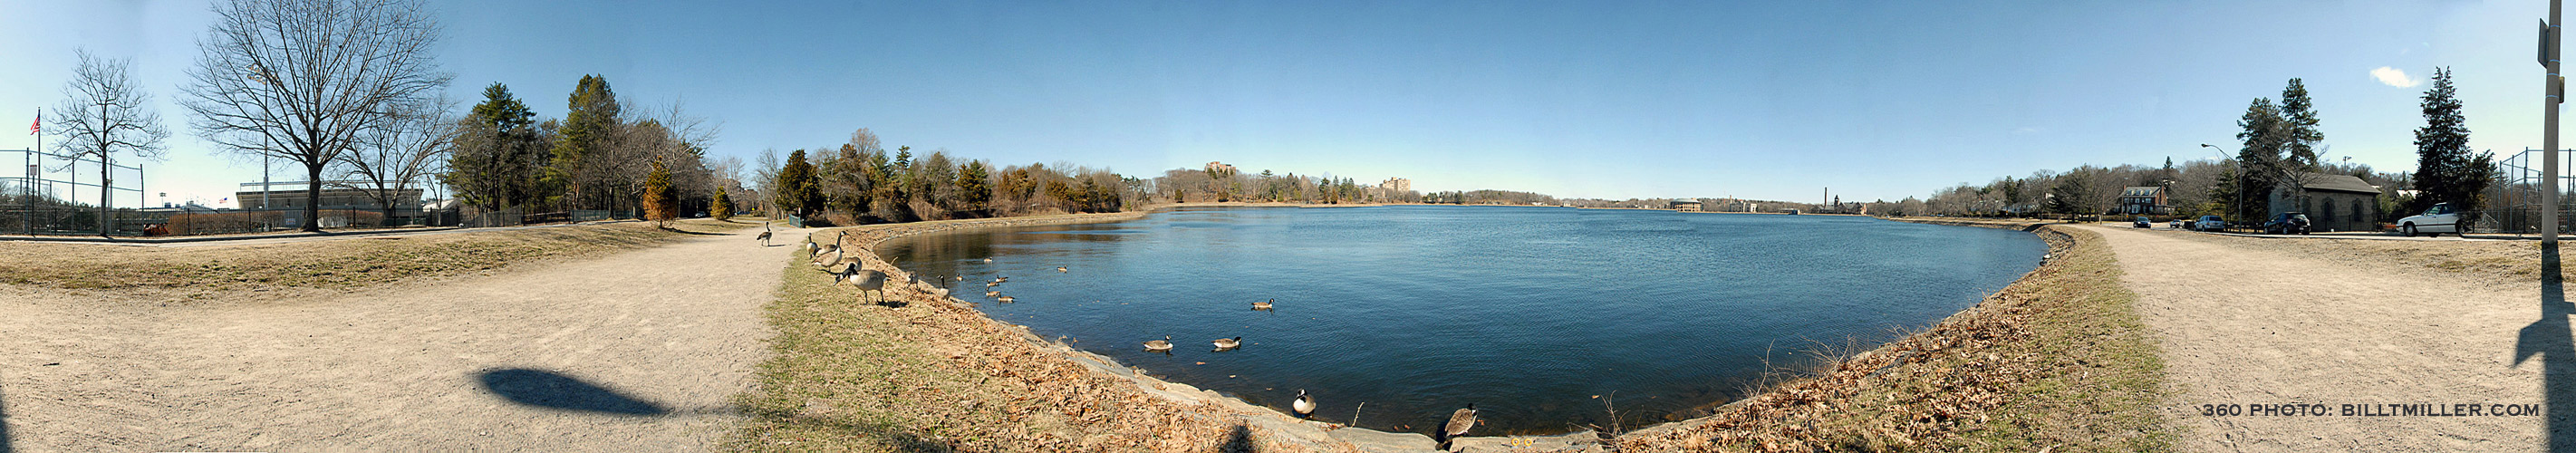 360 Panoramic of Reservoir by Bill T Miller